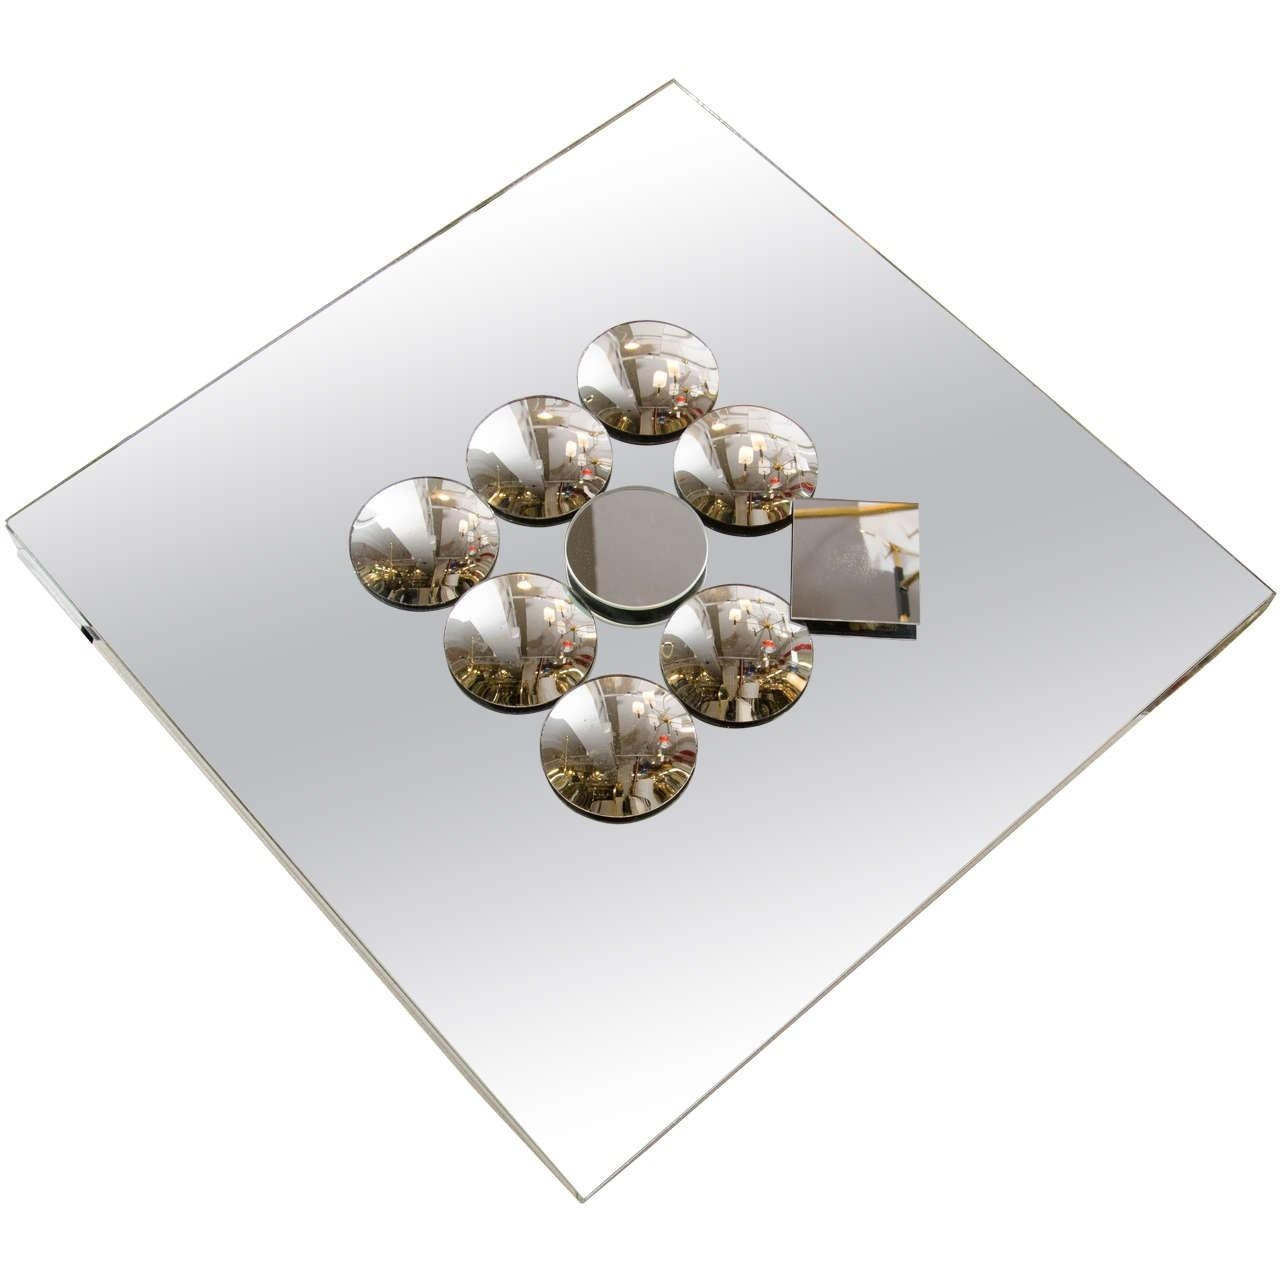 Pop Art Diamond Shaped Sculptural Wall Mirror With Small Convex Inside Small Diamond Shaped Mirrors (Image 12 of 20)